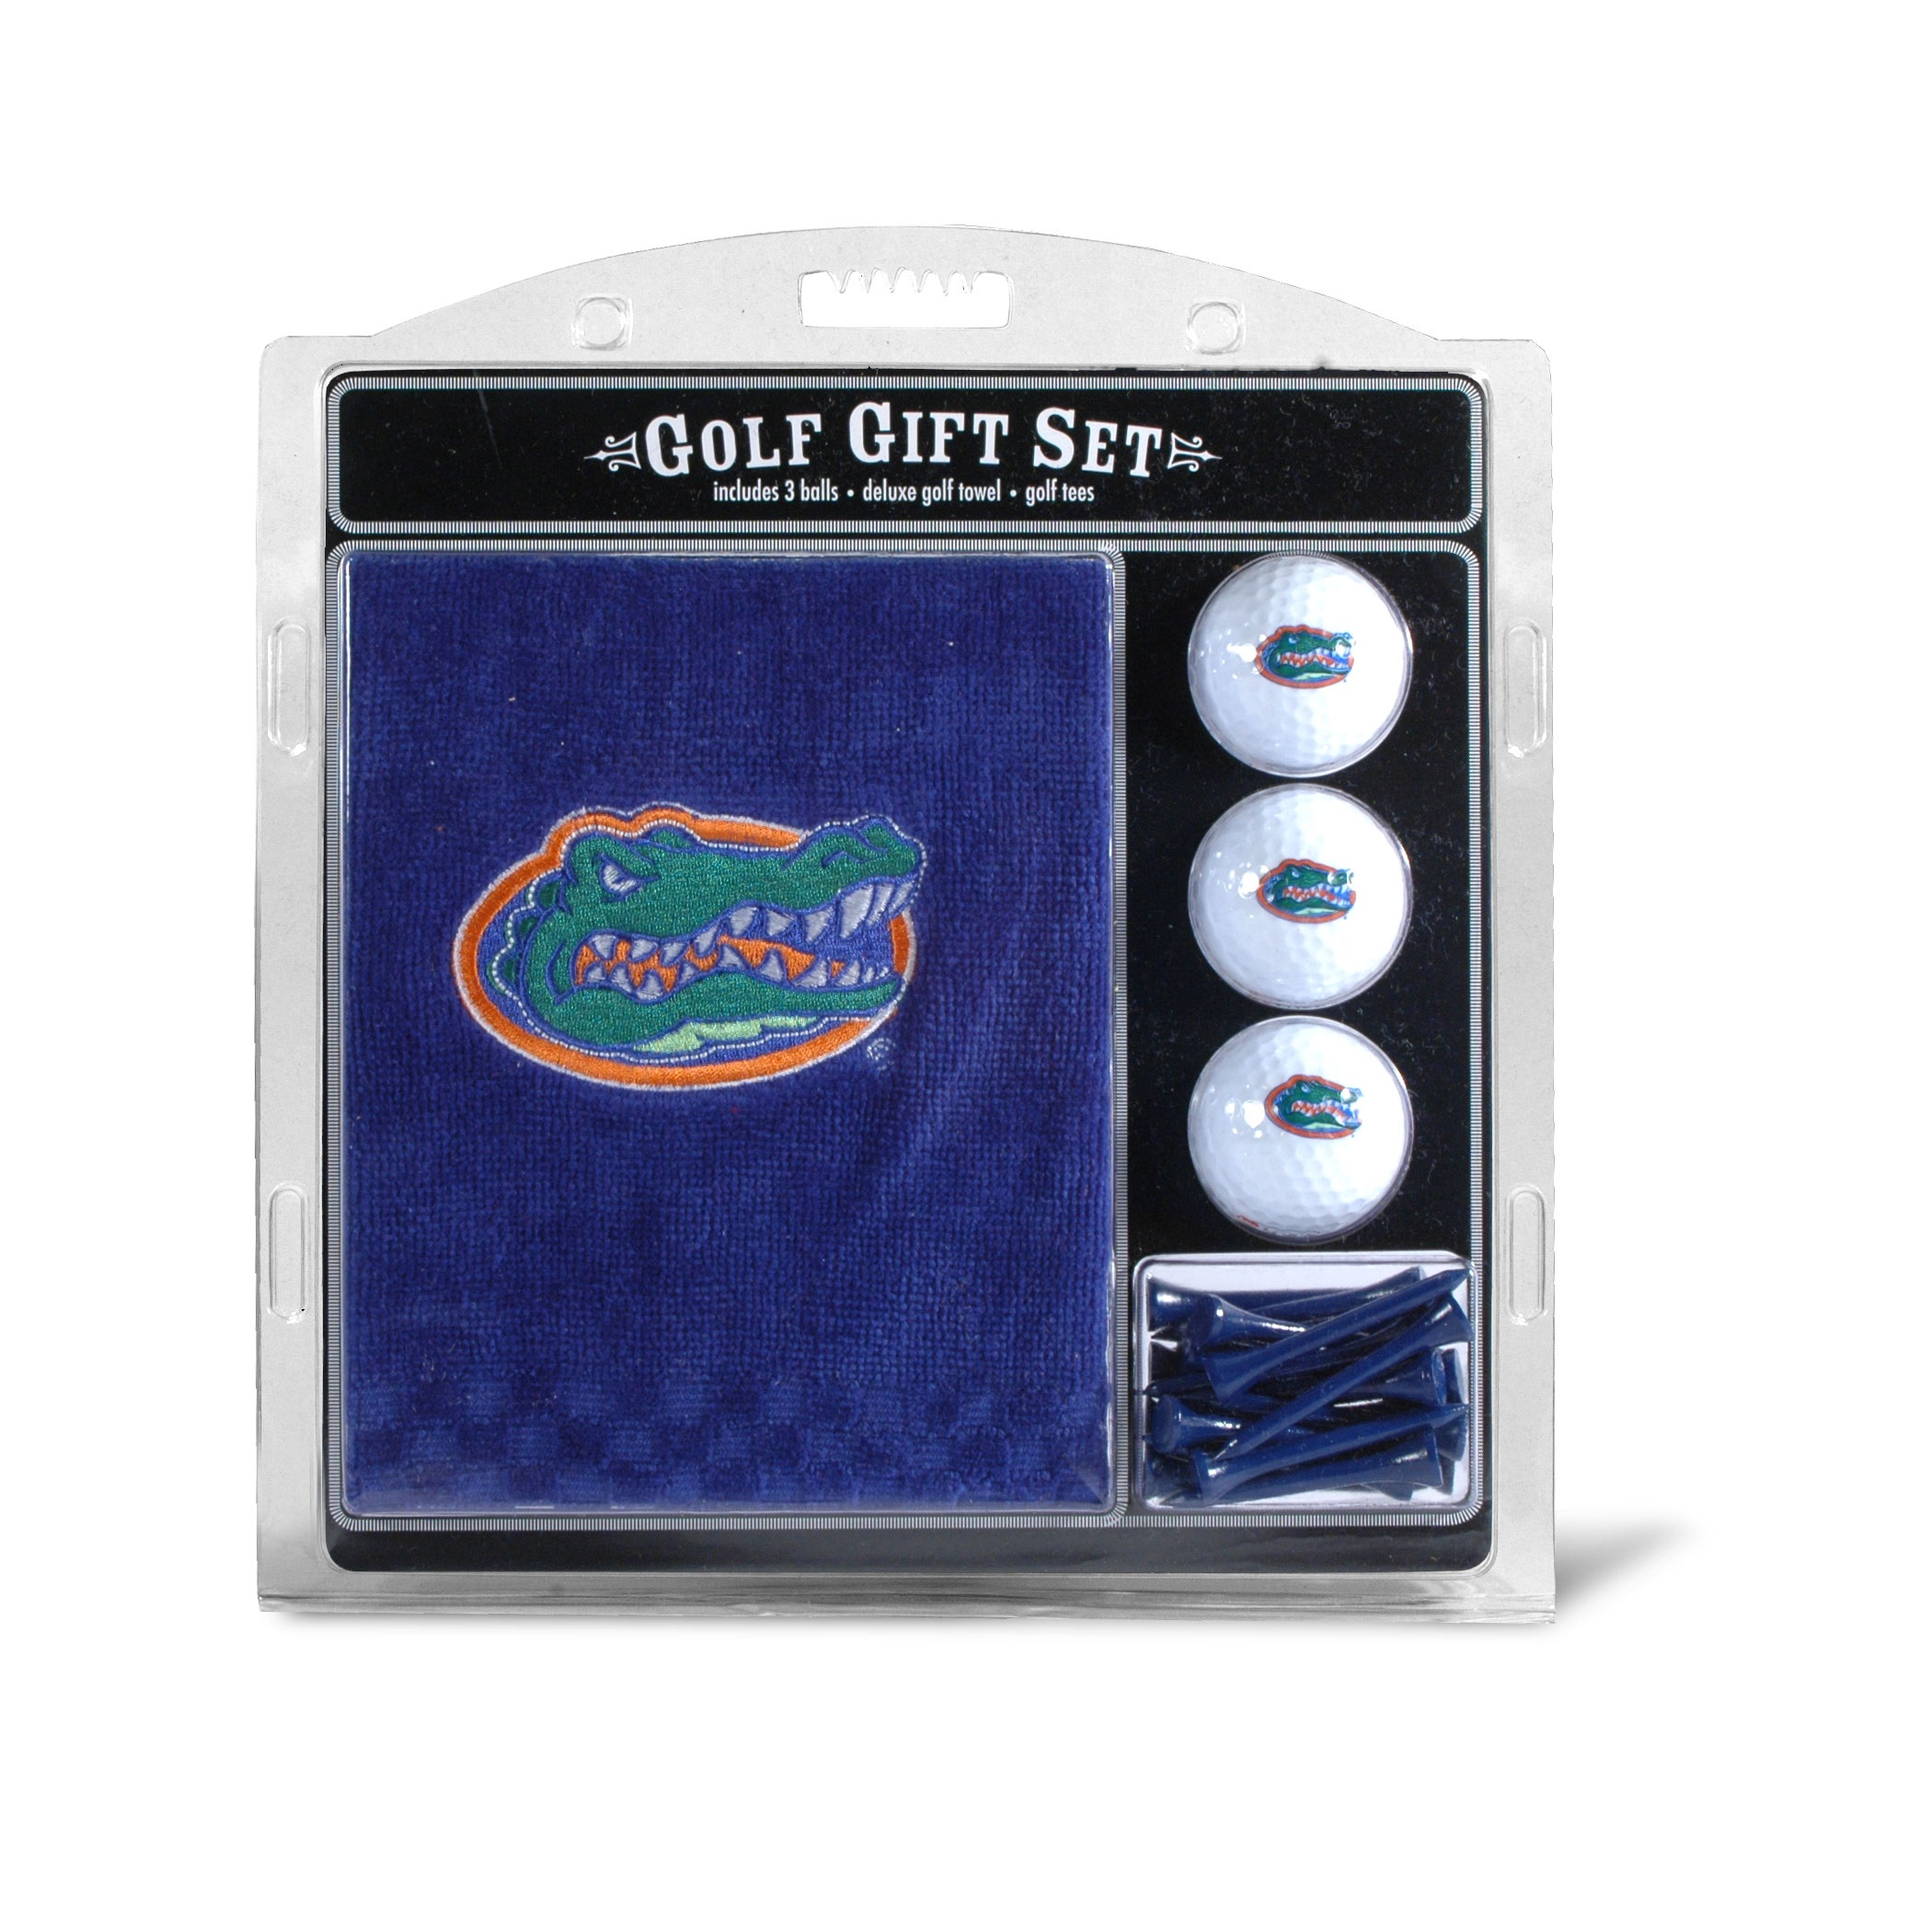 University of Florida Embroidered Towel Gift Set